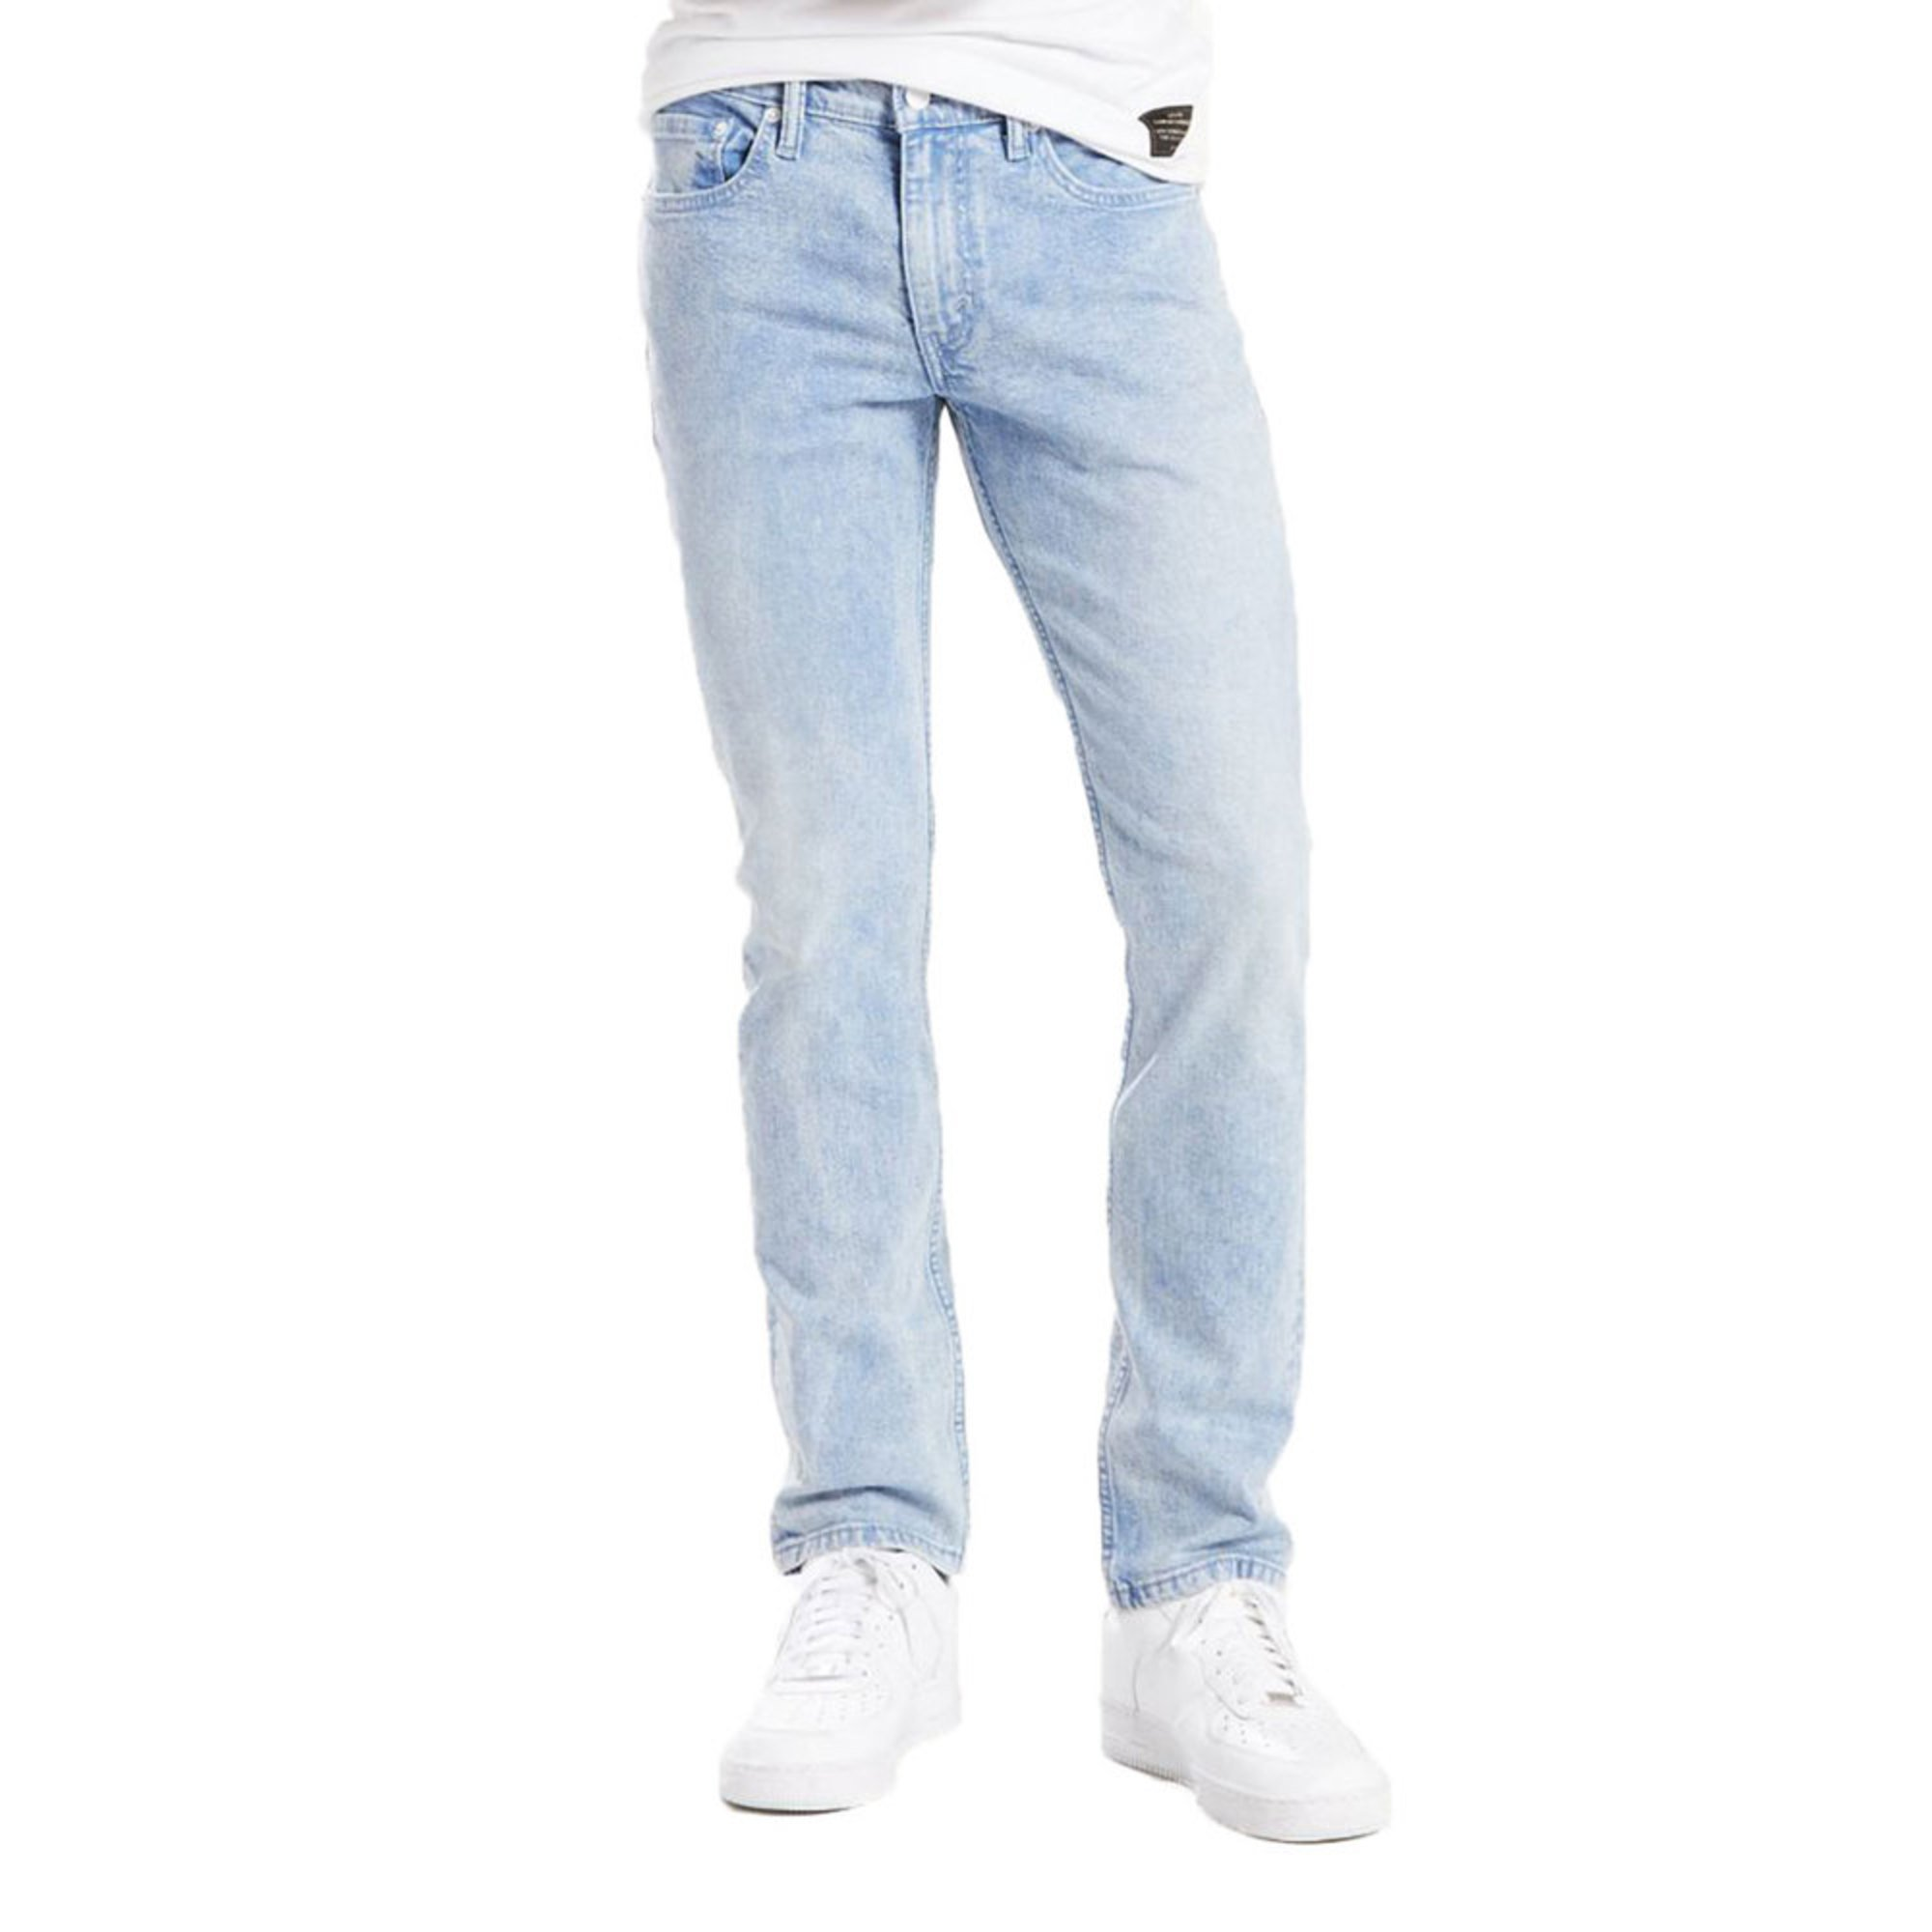 72b519d9 Levi's Men's 511 Slim Fit Denim Jeans In Washed Blue | Collection ...